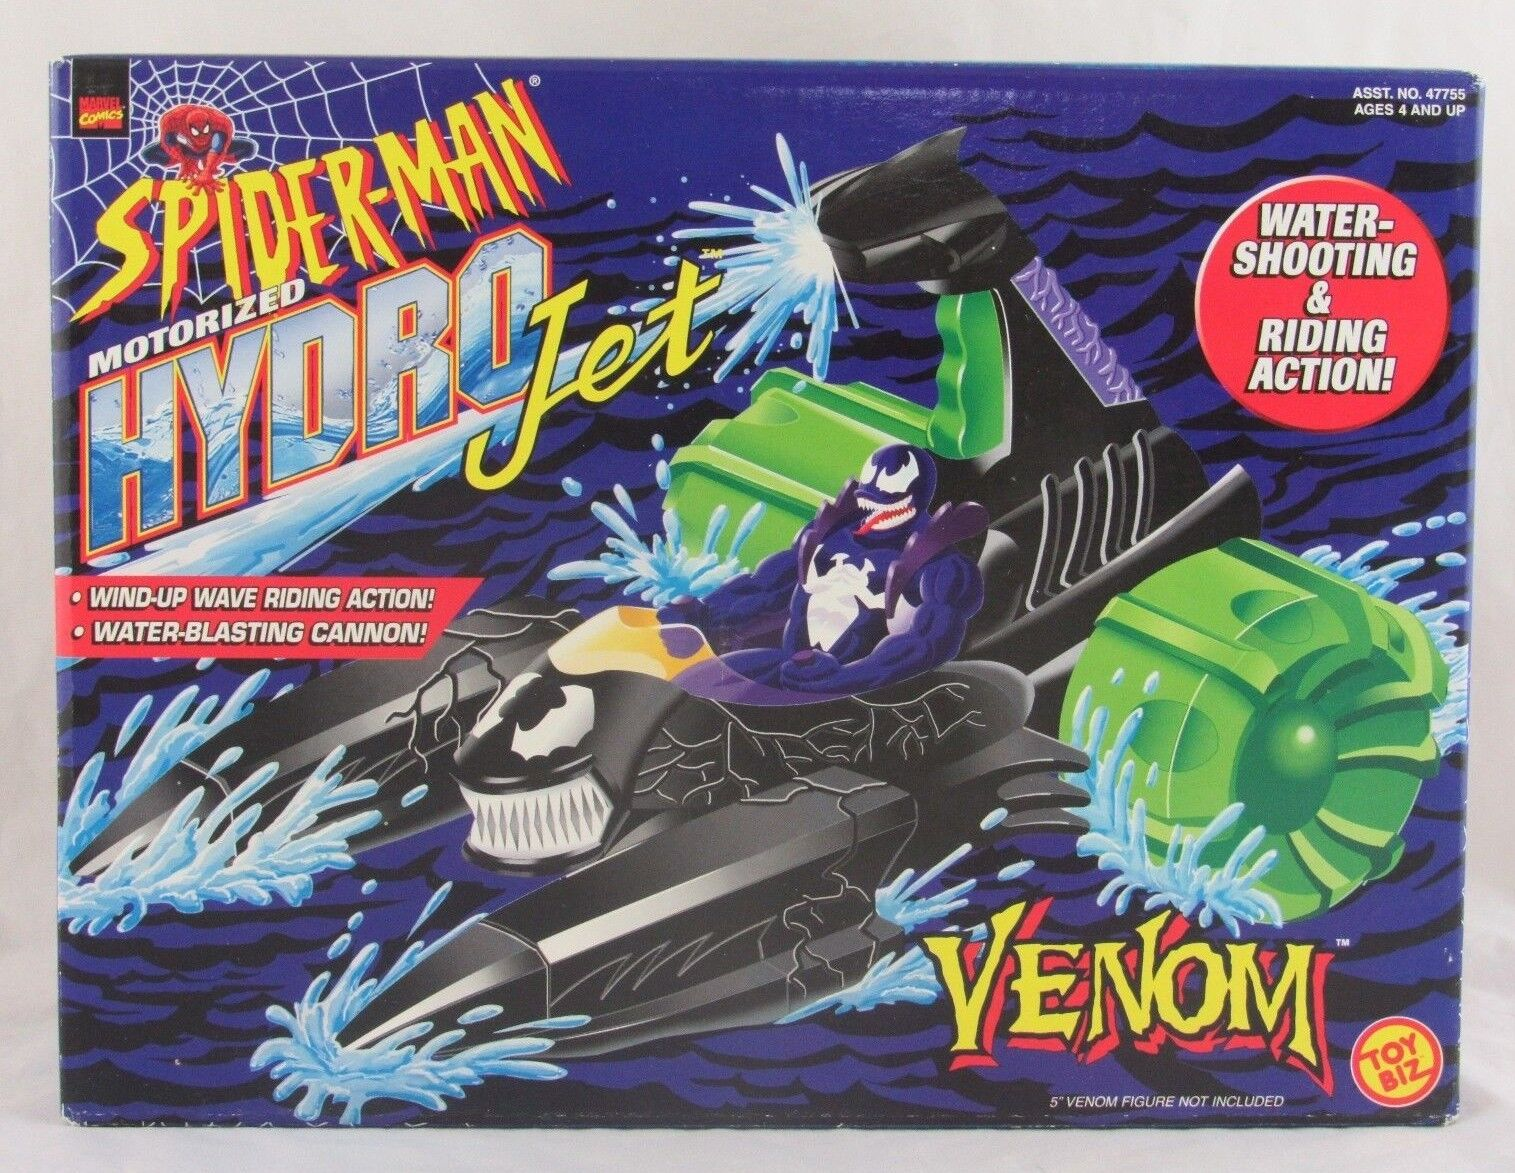 Marvel Spider-Man Venom Motorized Hydro Jet, Toy Biz 1998, Sealed in Box - RARE